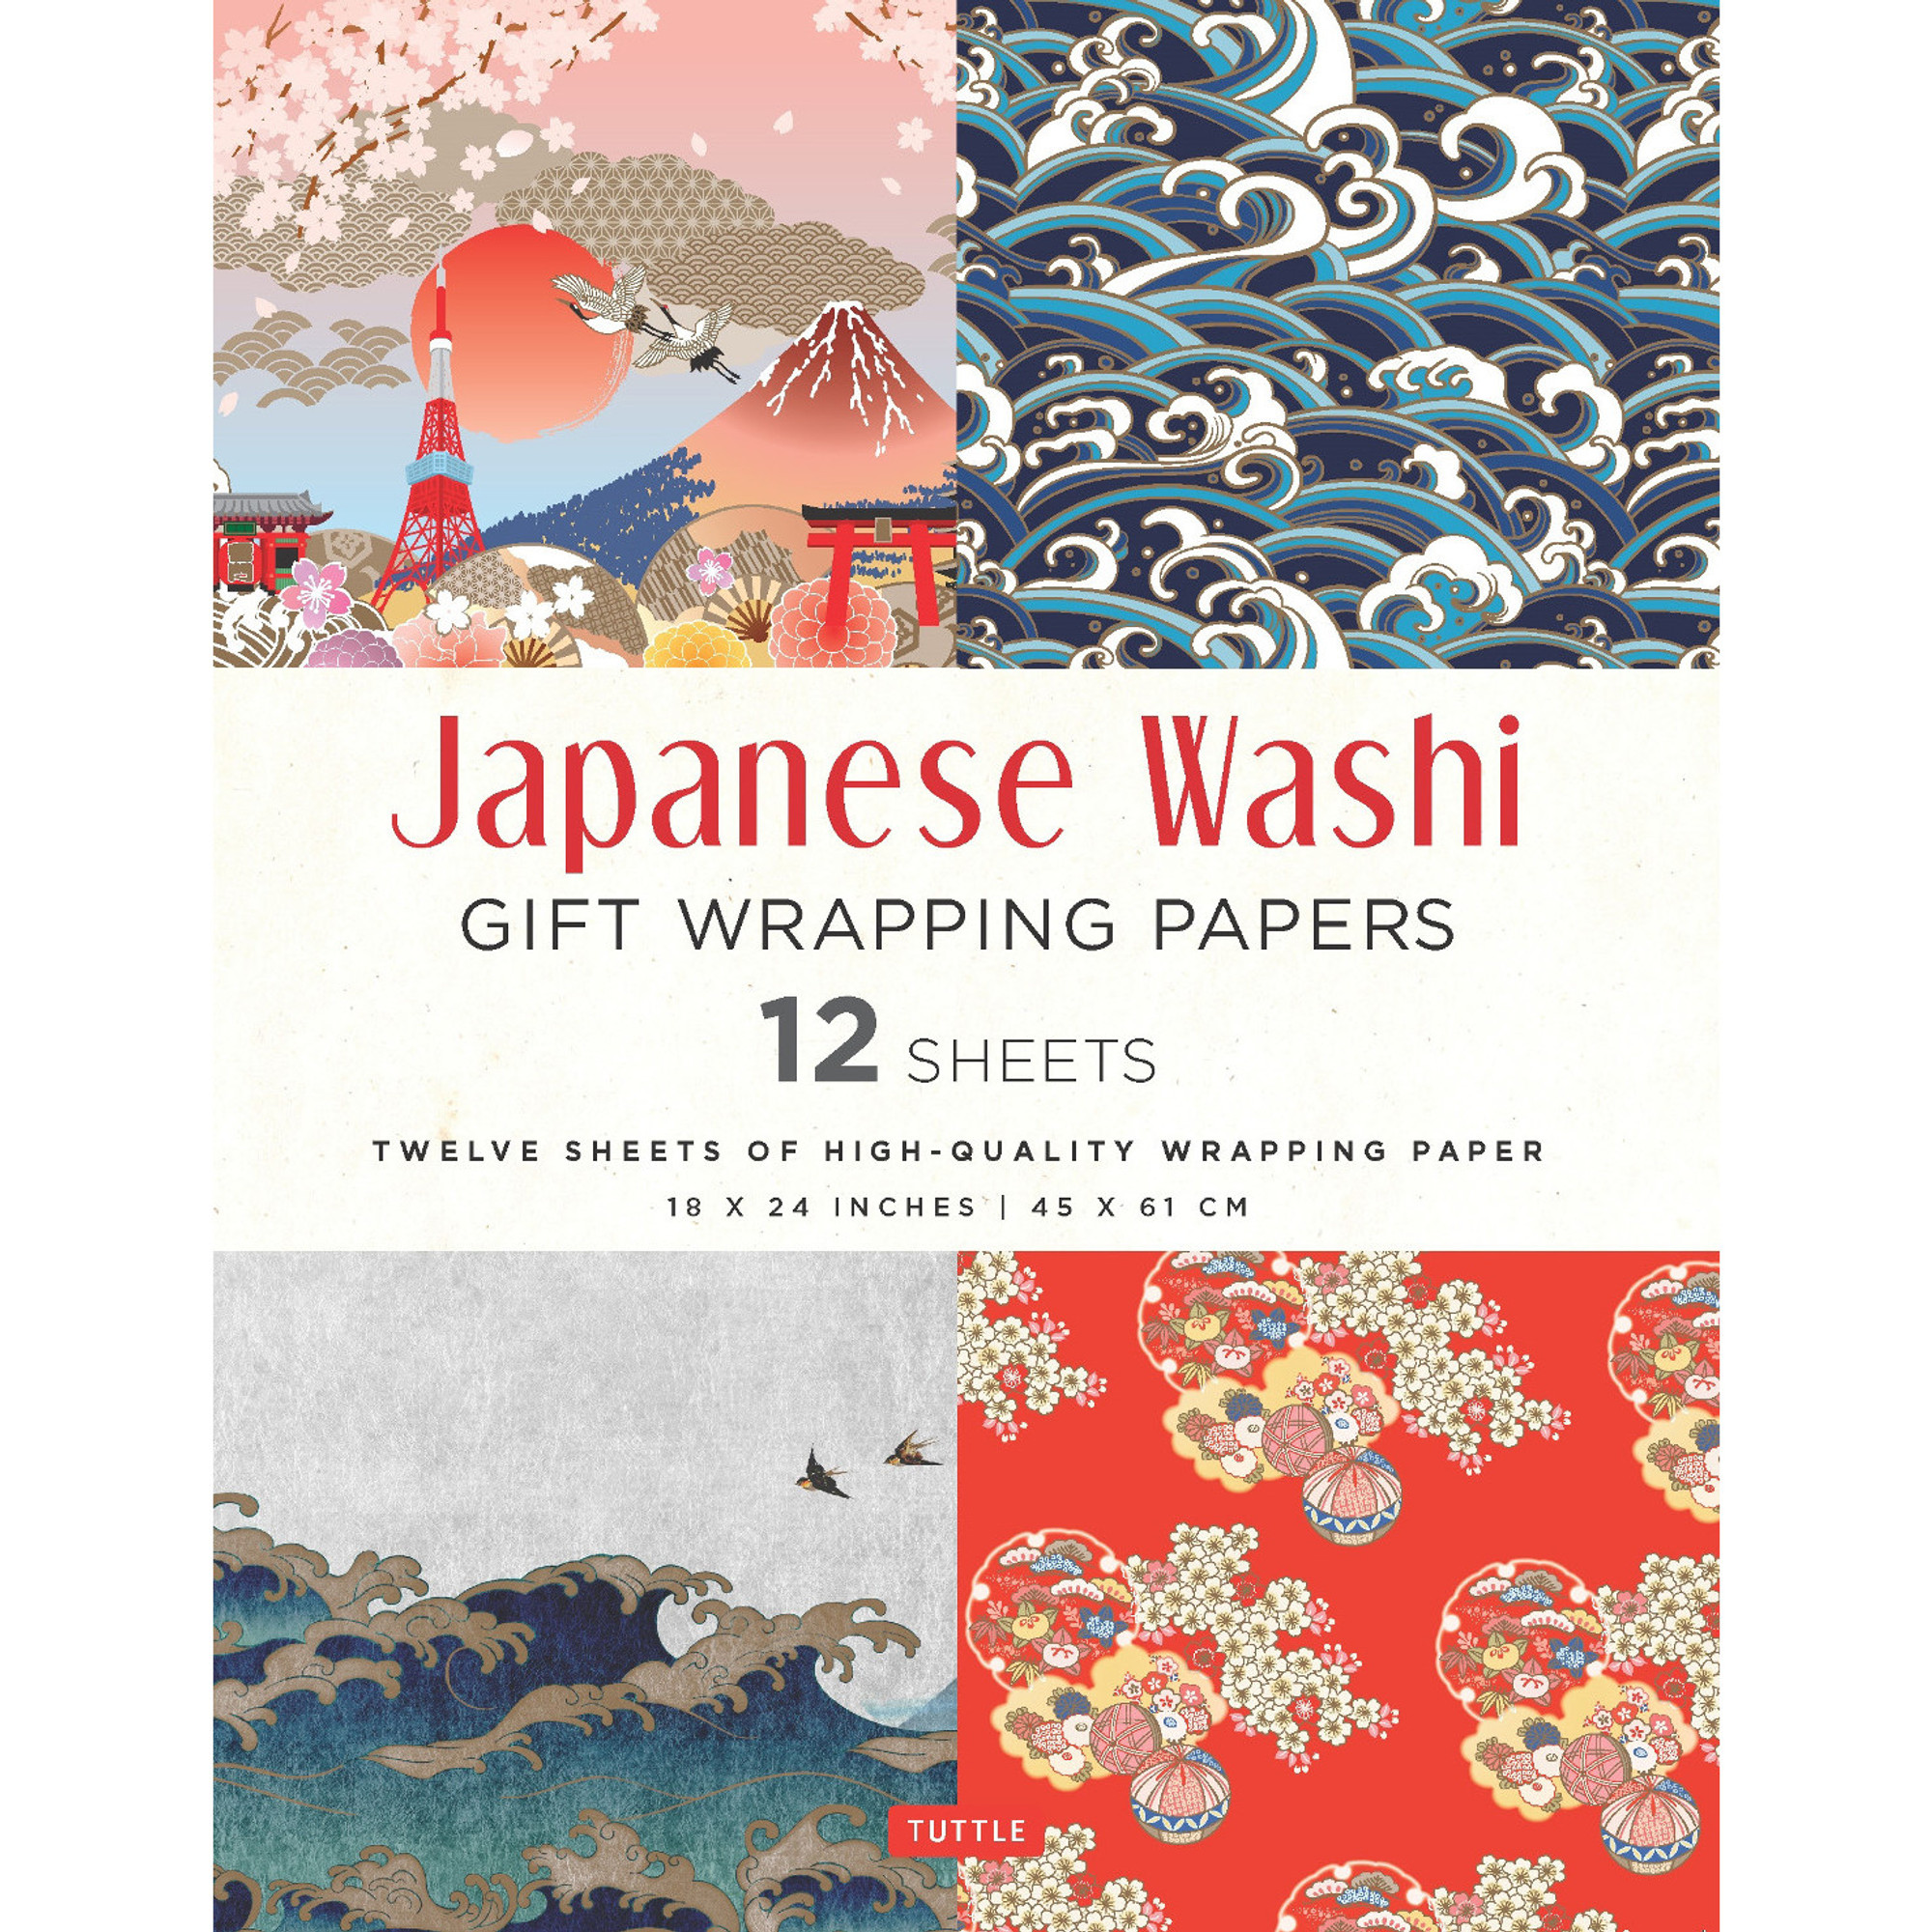 Japanese Washi Gift Wrapping Papers 12 Sheets Tuttle Publishing